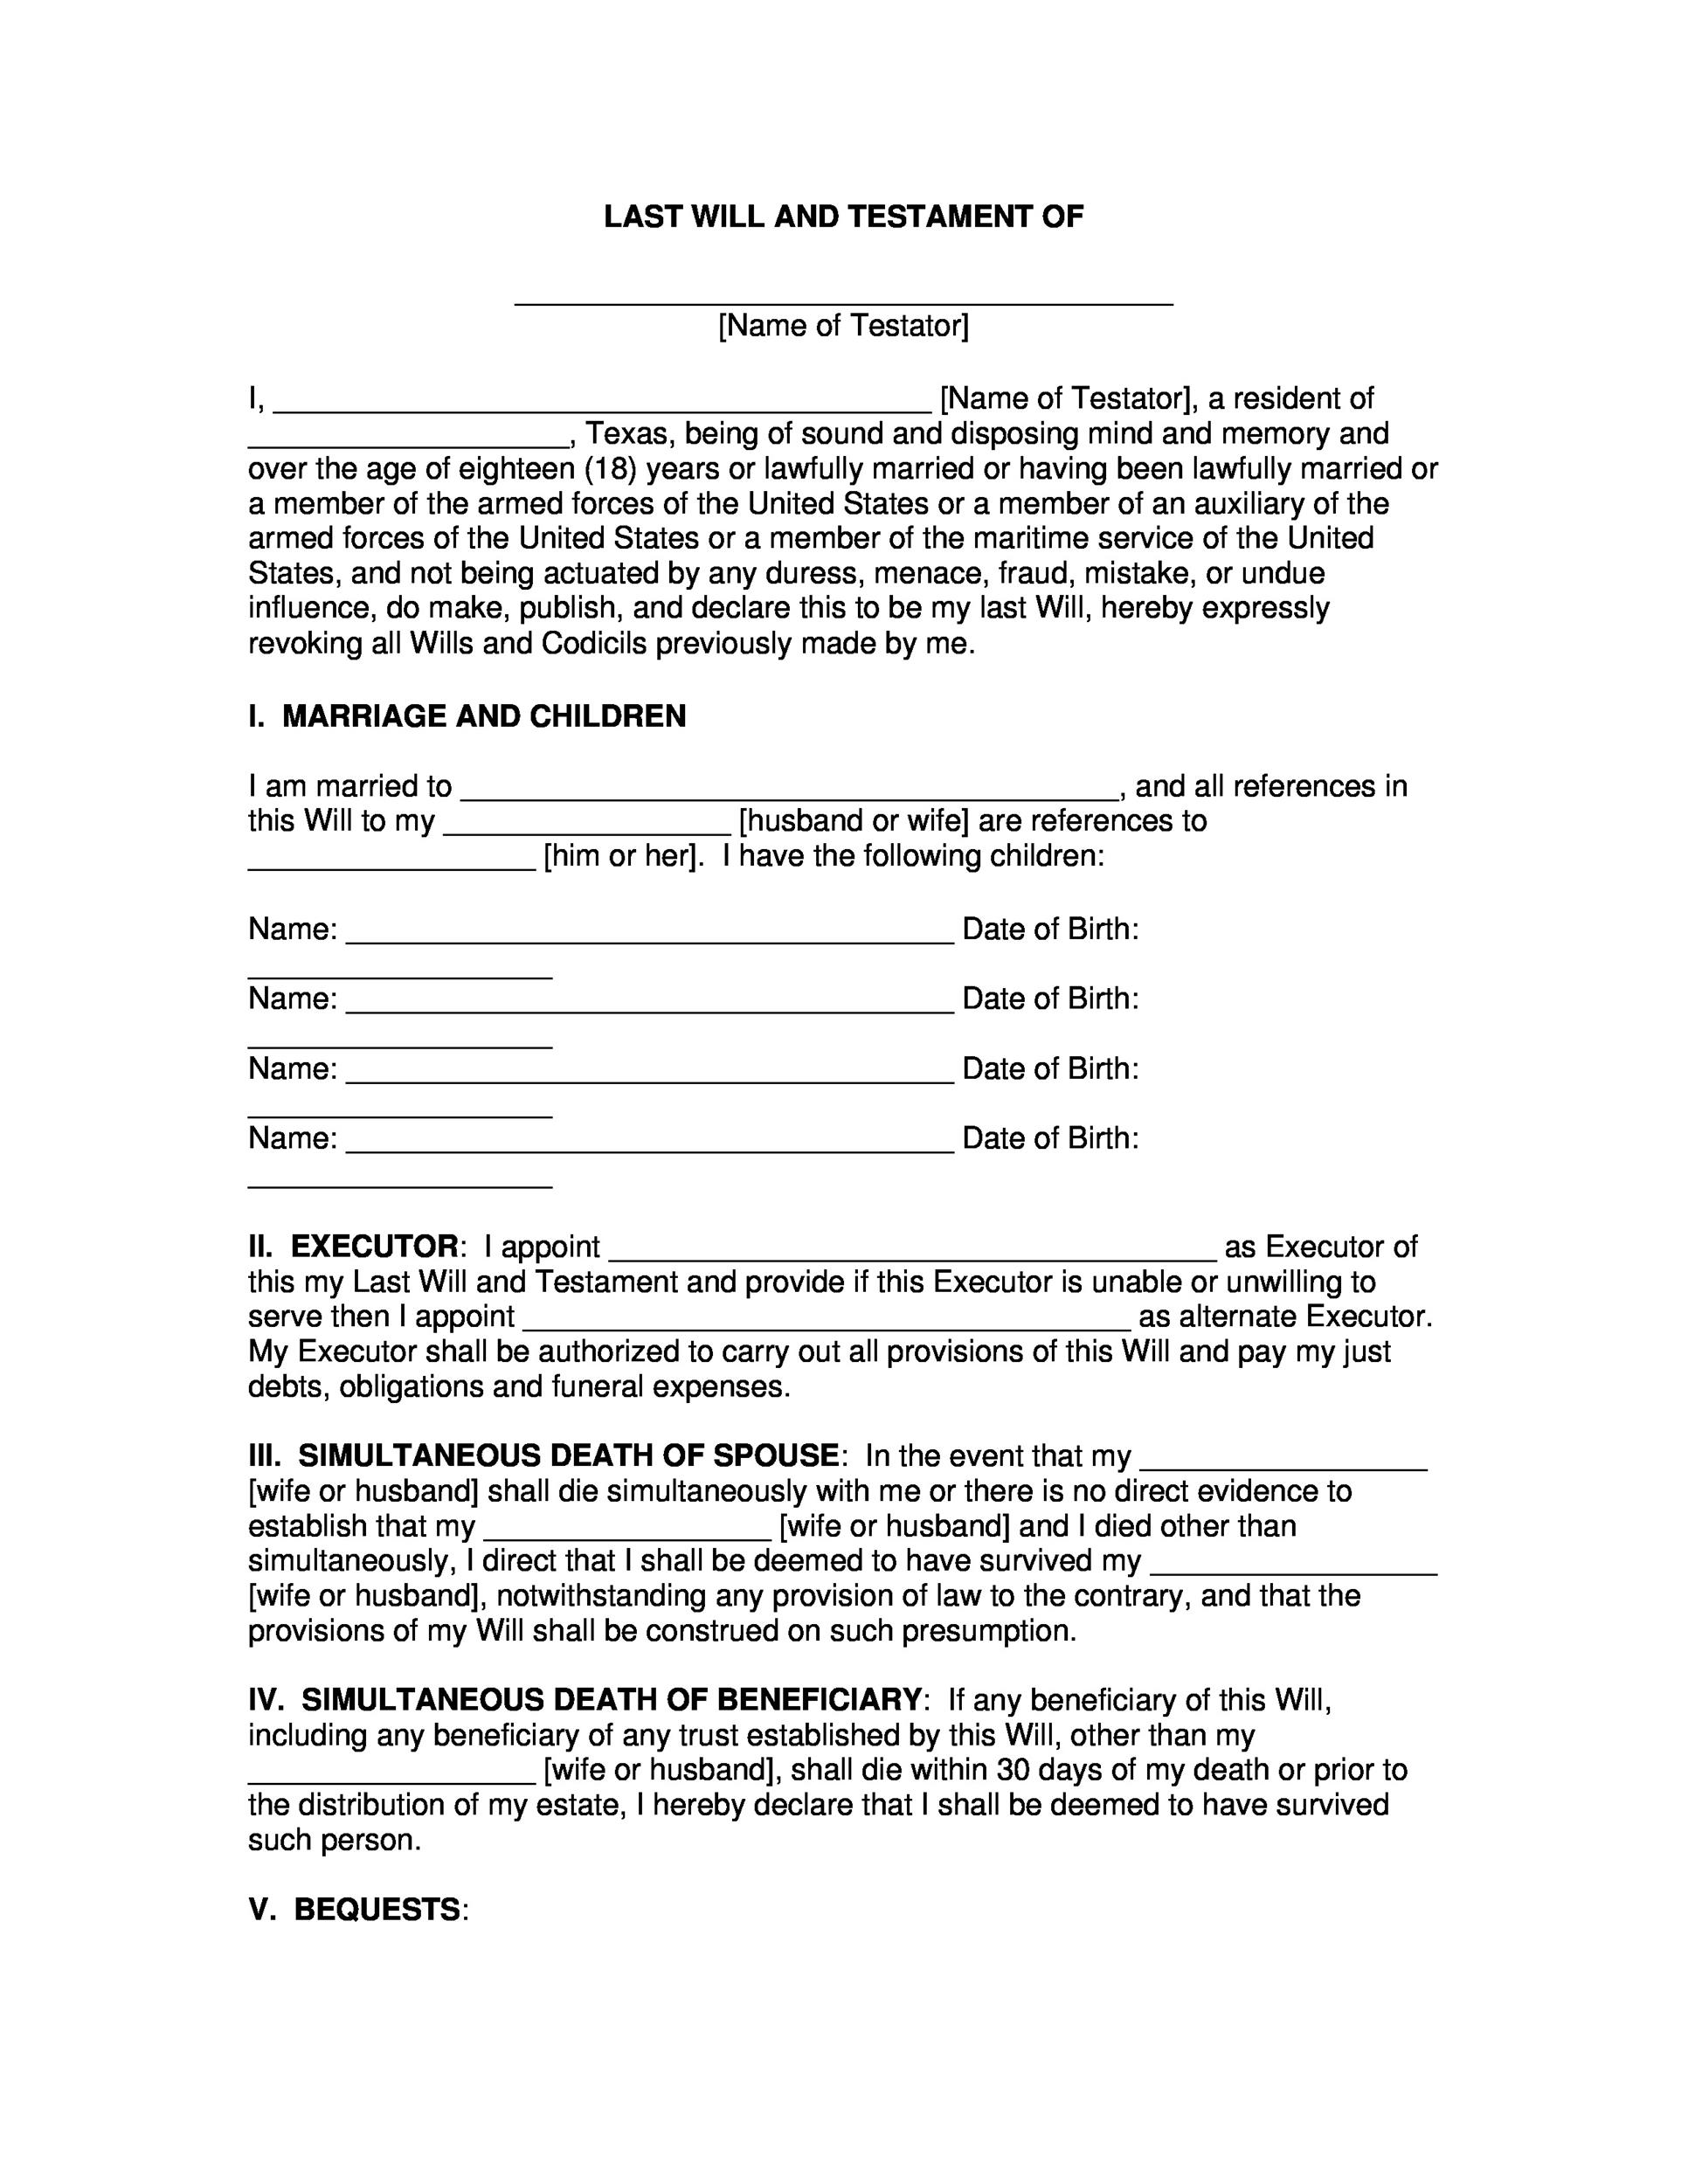 39 last will and testament forms templates template lab for Wills and testaments templates